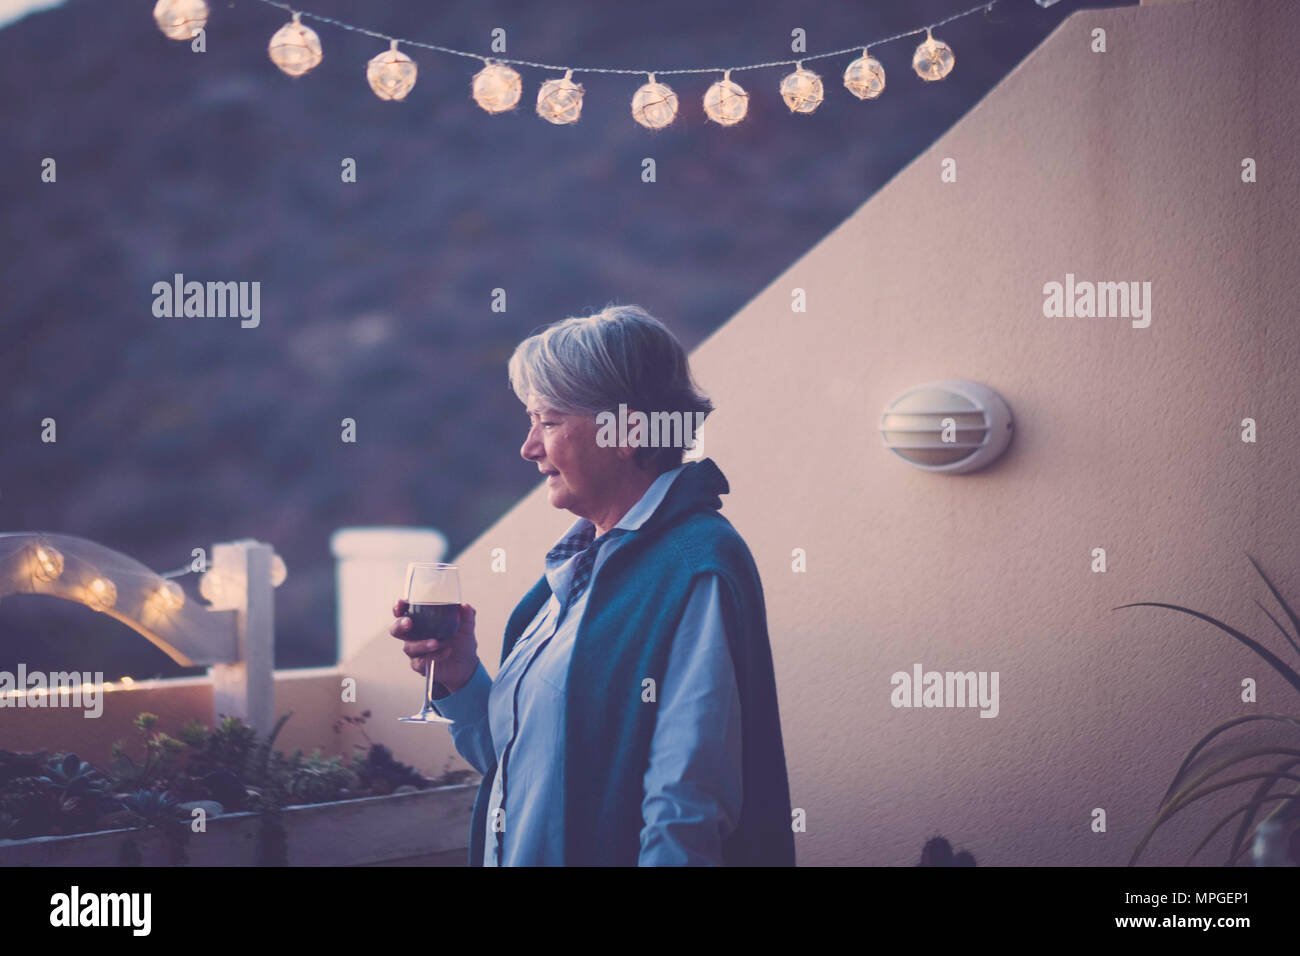 aged senior woman drink some wine during a celebration event by night in vacation. summer style and mountains nature view. beautiful adult model lifes - Stock Image